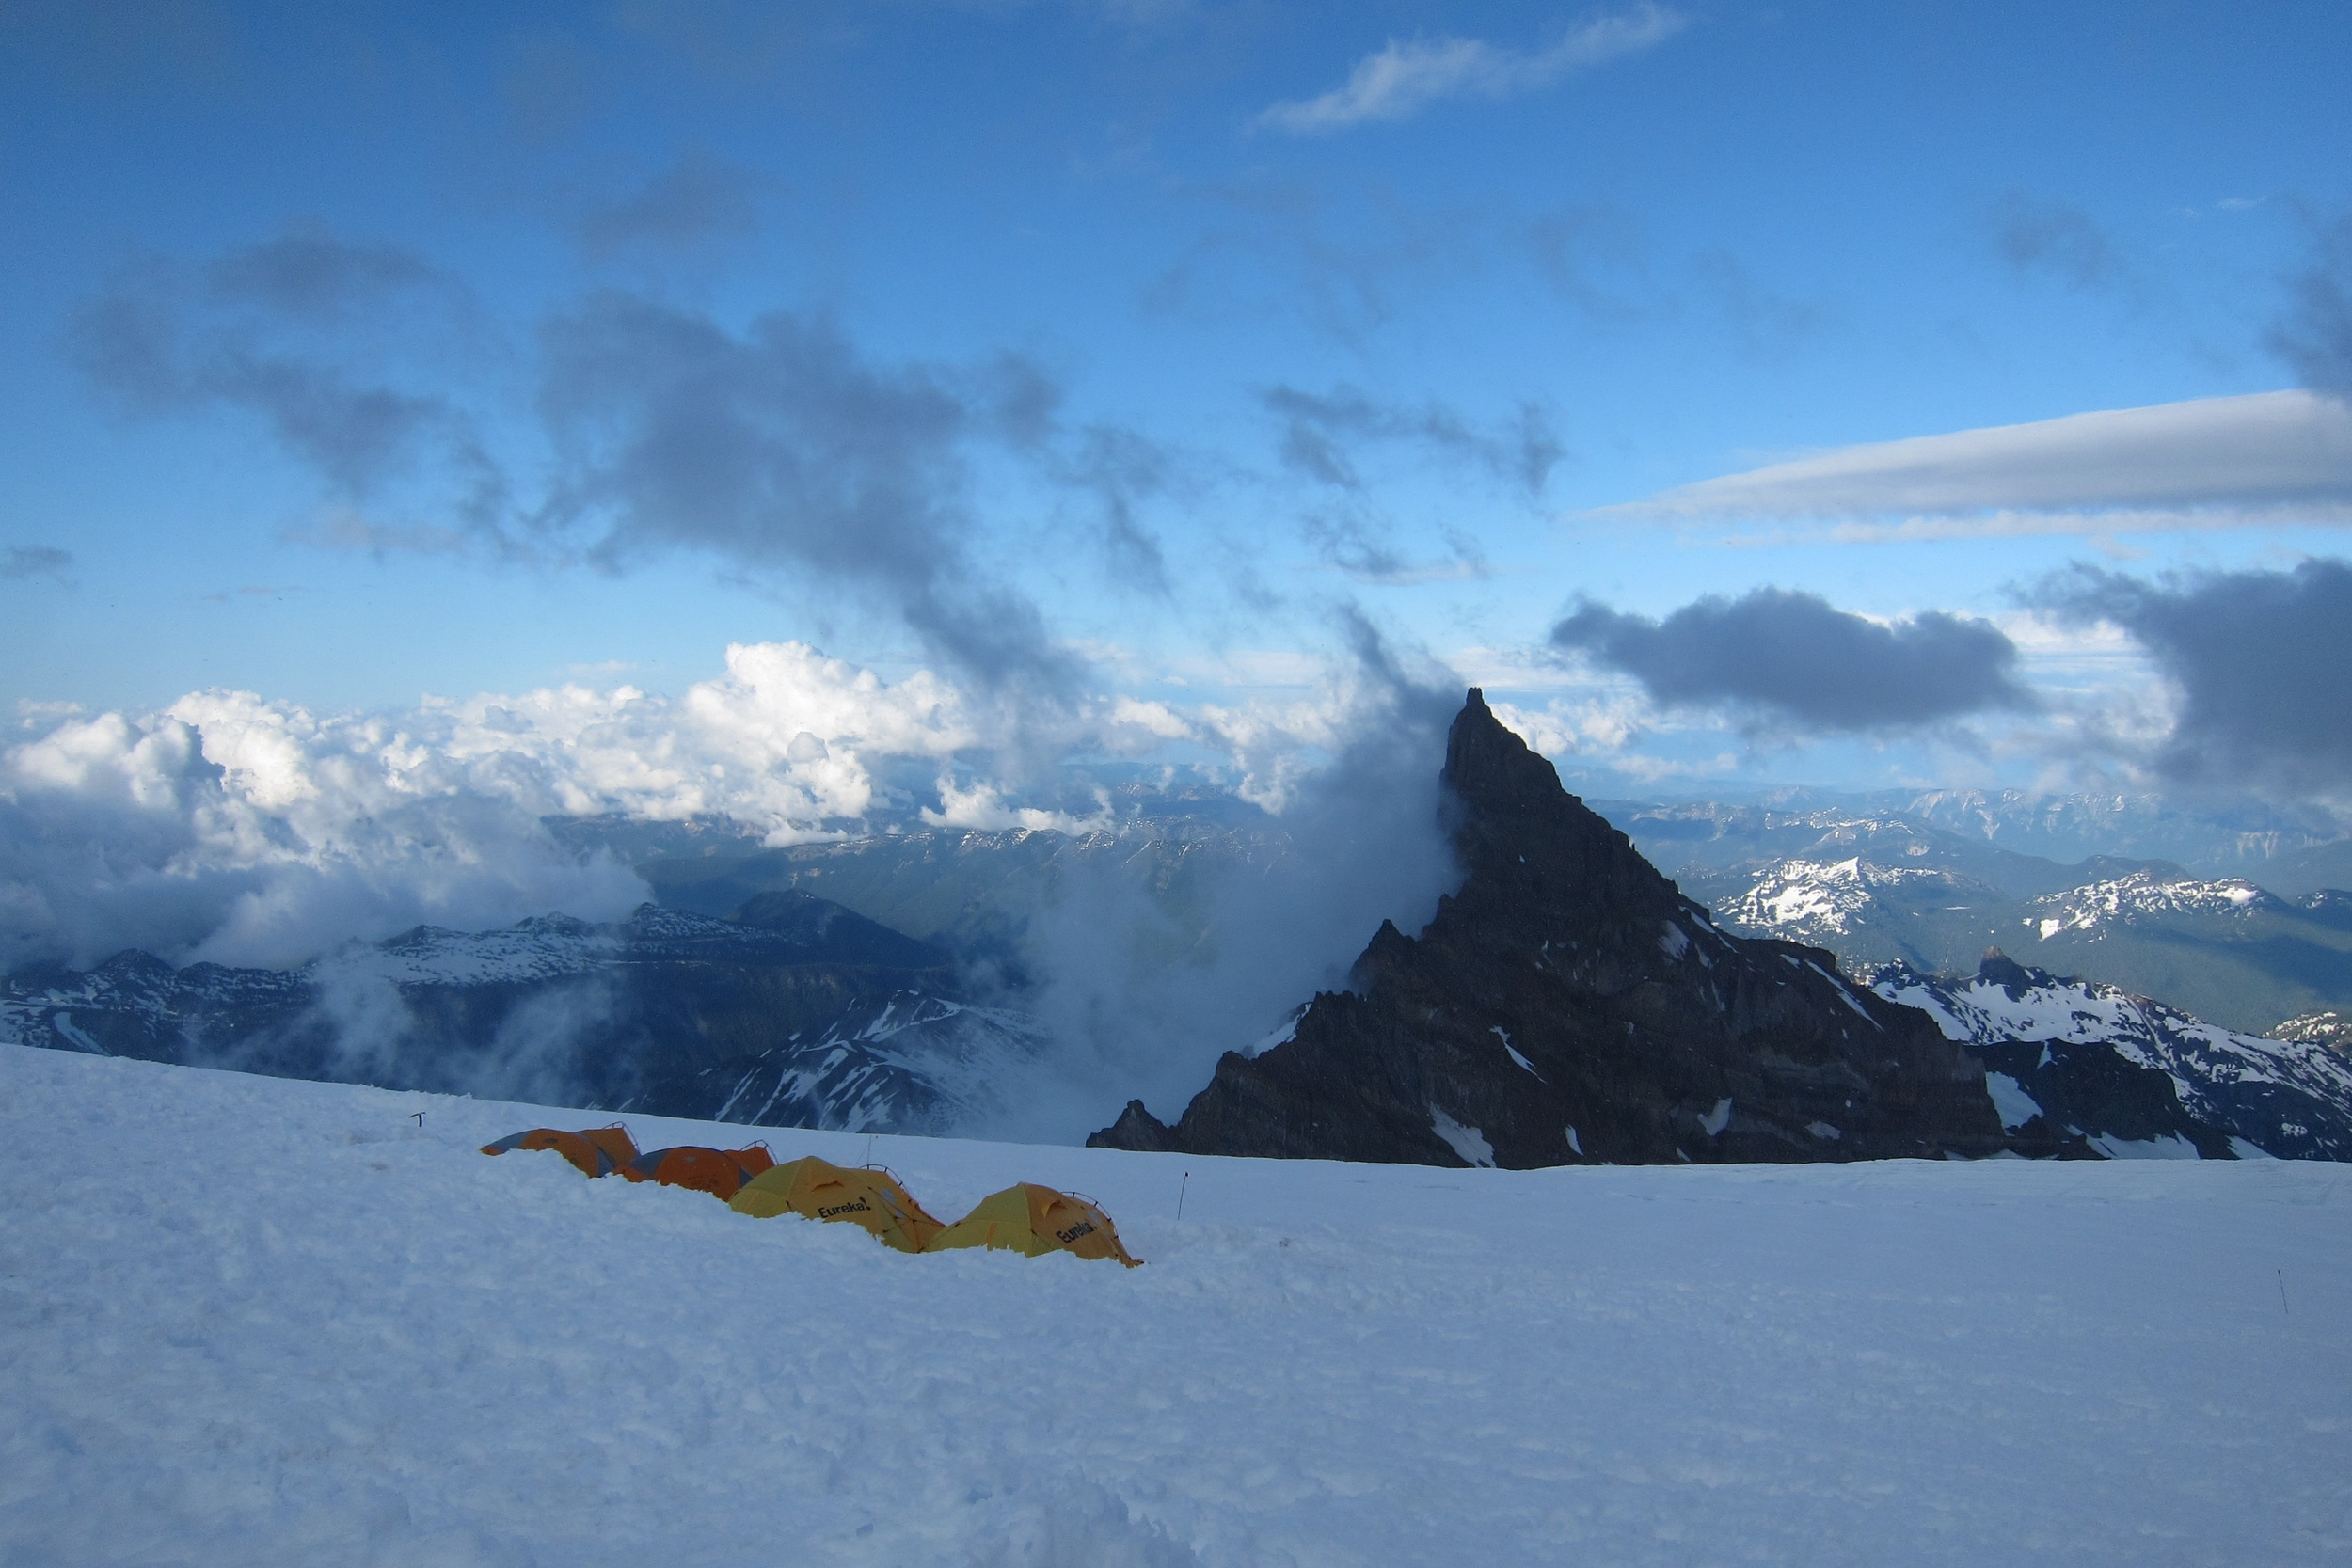 A beautiful view across Cathedral Peak and down the Ingraham Glacier. The weather can quickly go from this....